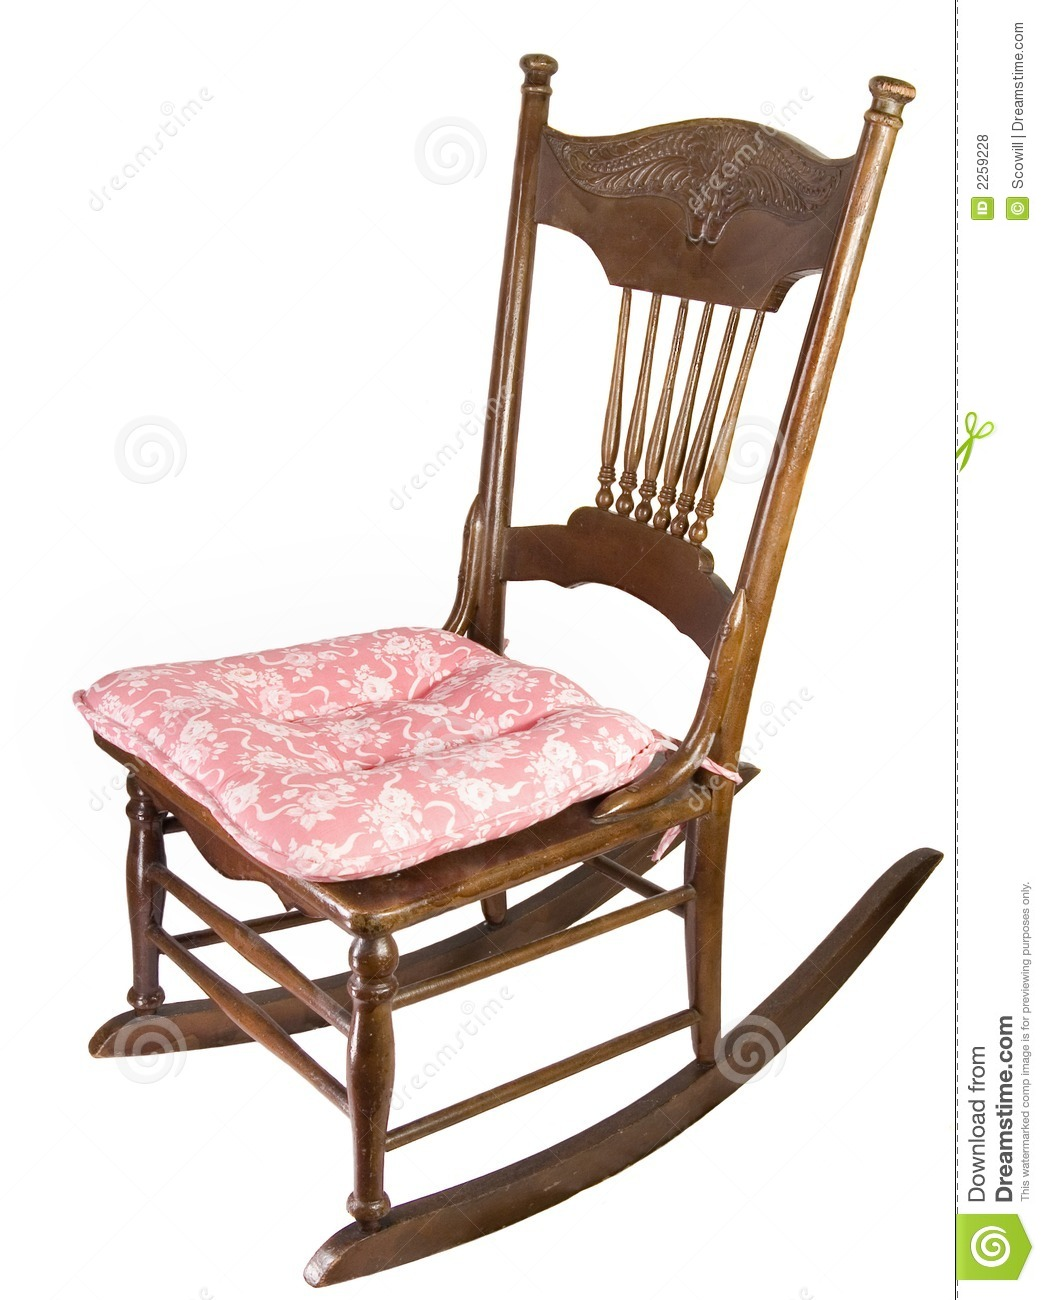 Armless Rocking Chair Royalty Free Stock Photos - Image: 2259228